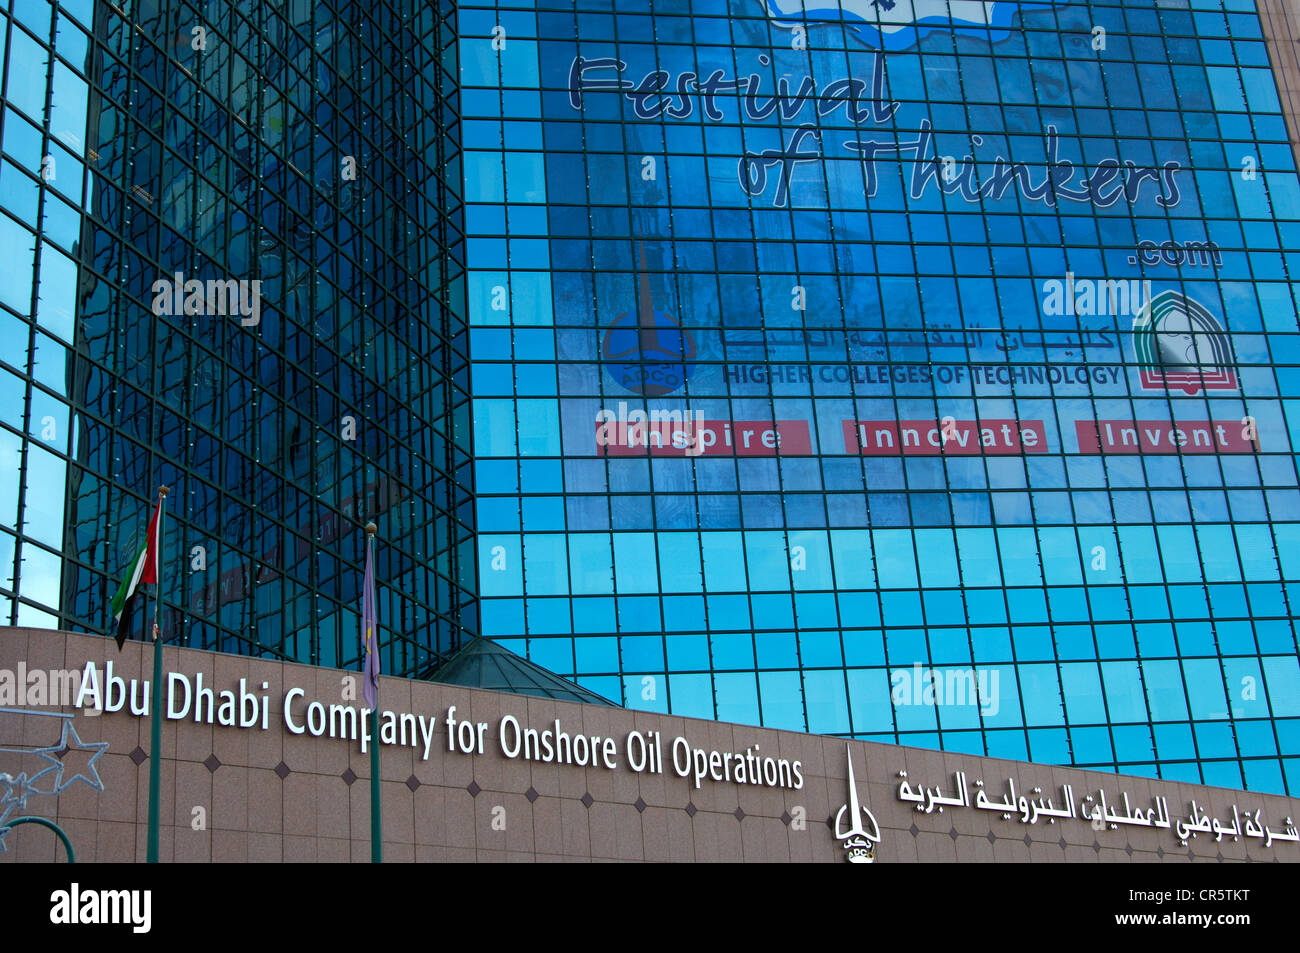 Headquarters of the oil firm Abu Dhabi Company for Onshore